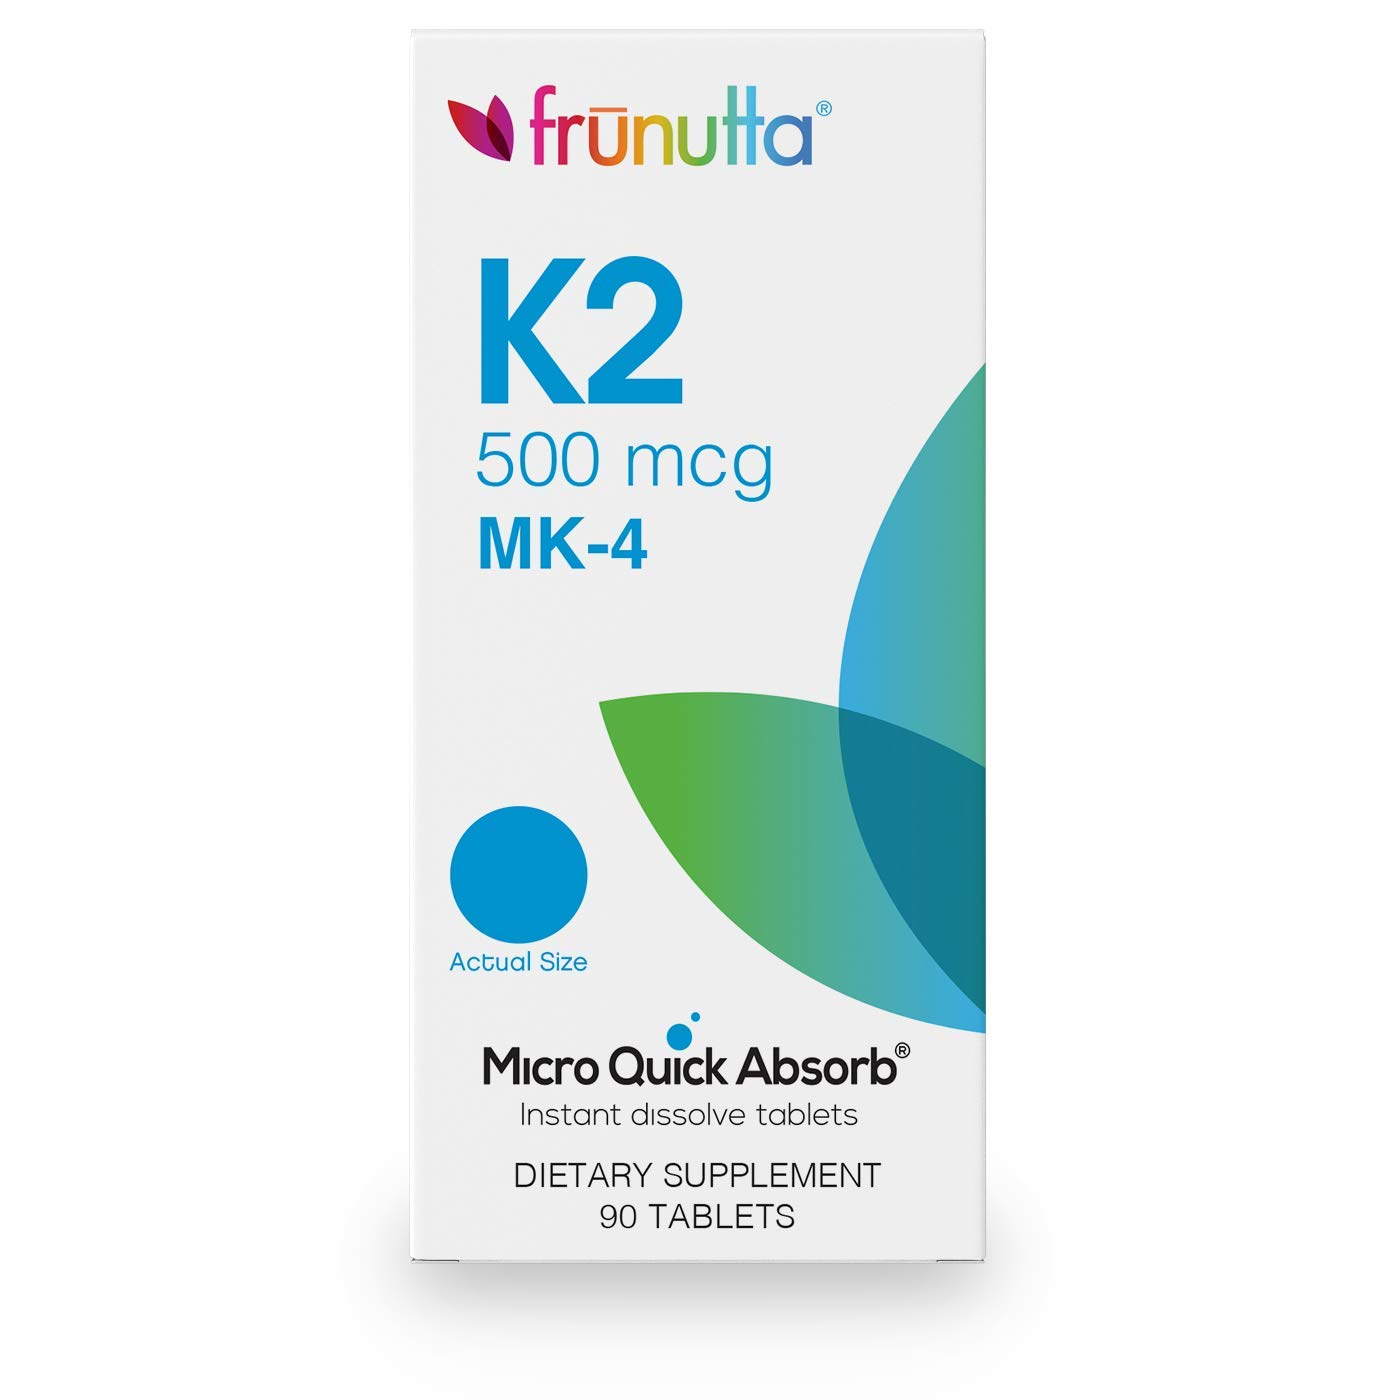 Frunutta Vitamin K2 Tablets 500 mcg MK-4, Under The Tongue Instant Dissolve Tablets, 3 Month Supply, Proudly Made in USA